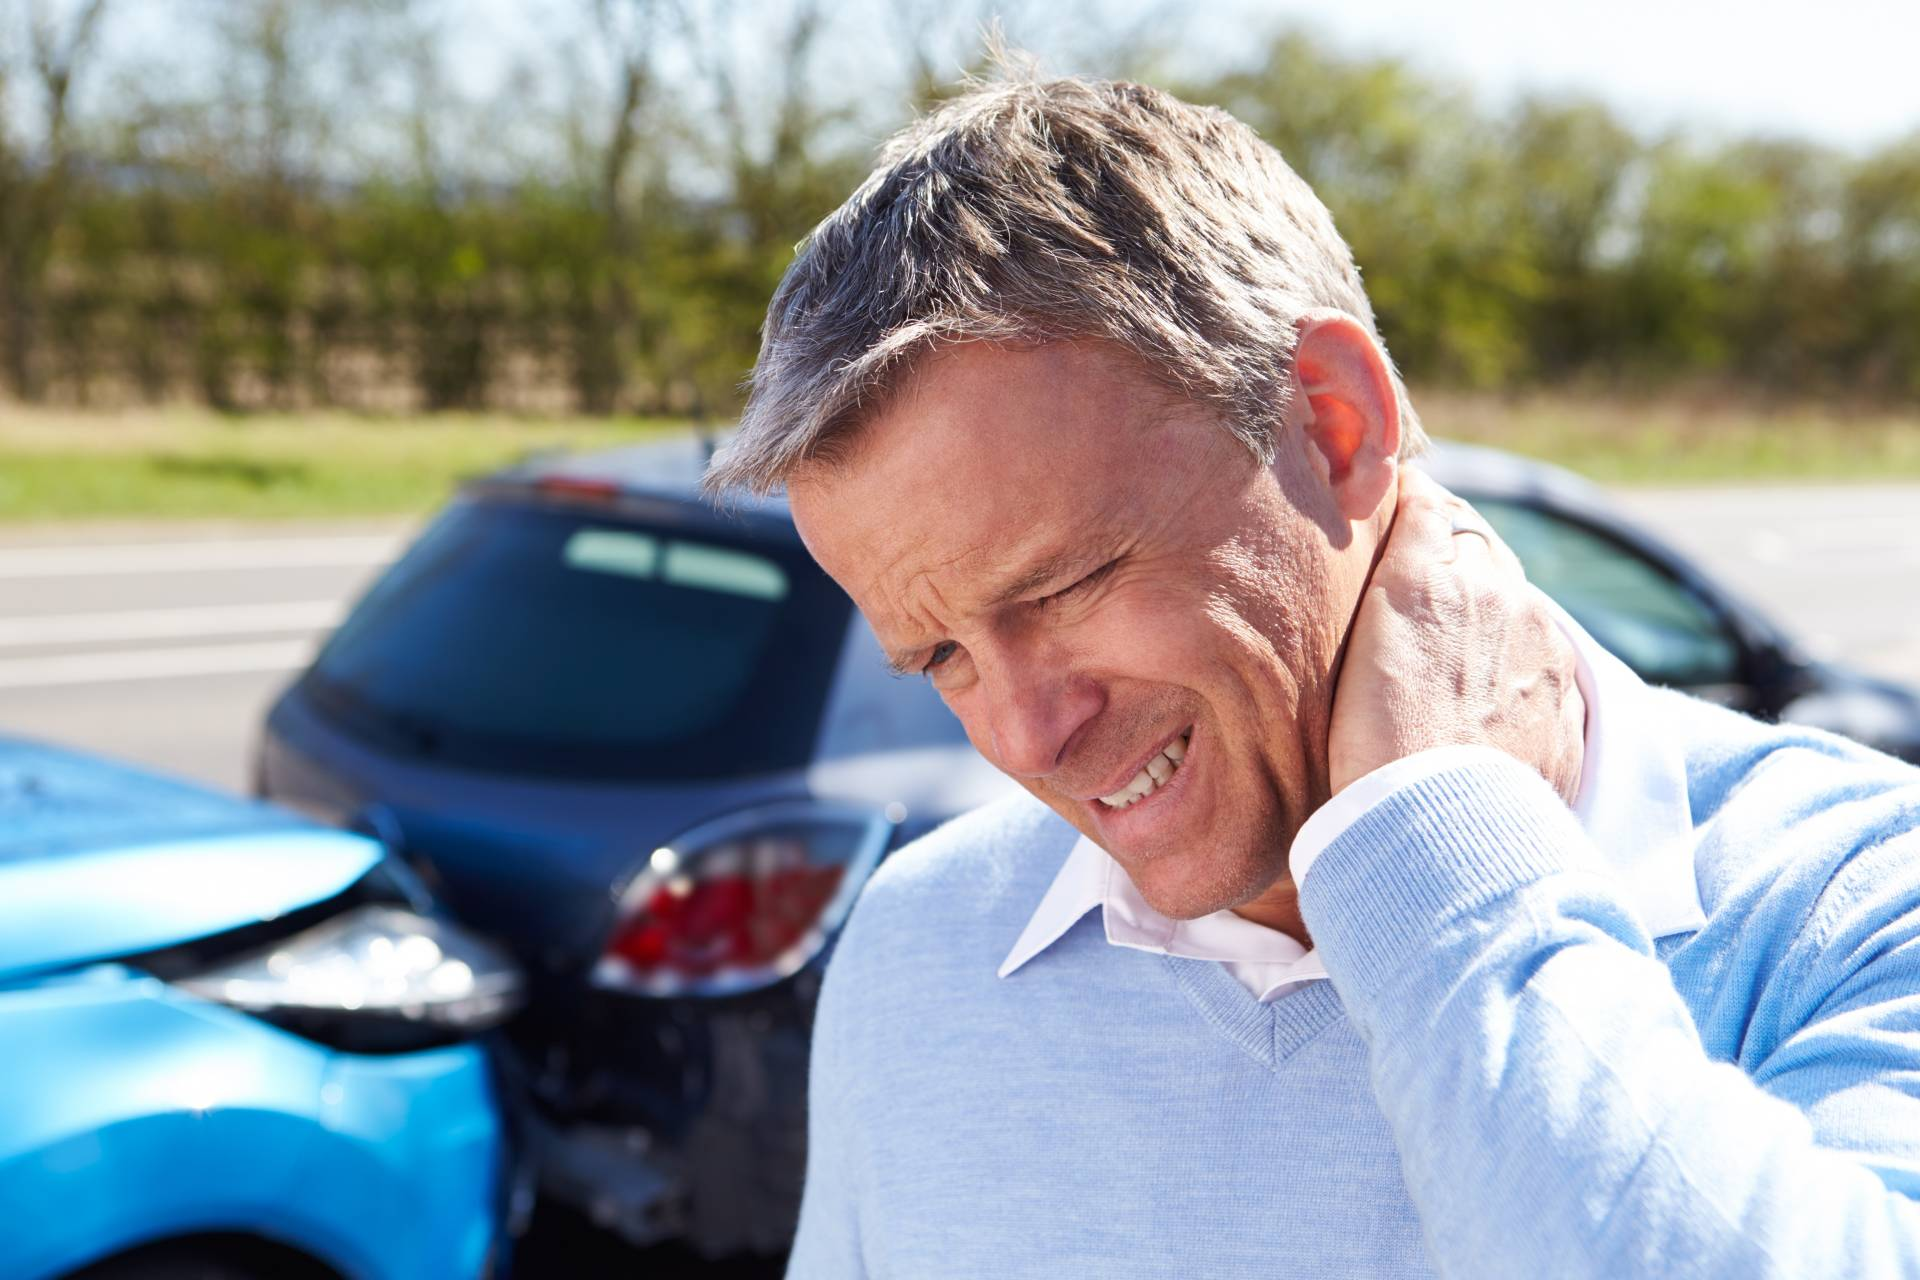 Injured in an auto accident? Book a free consultation with our lawyers.